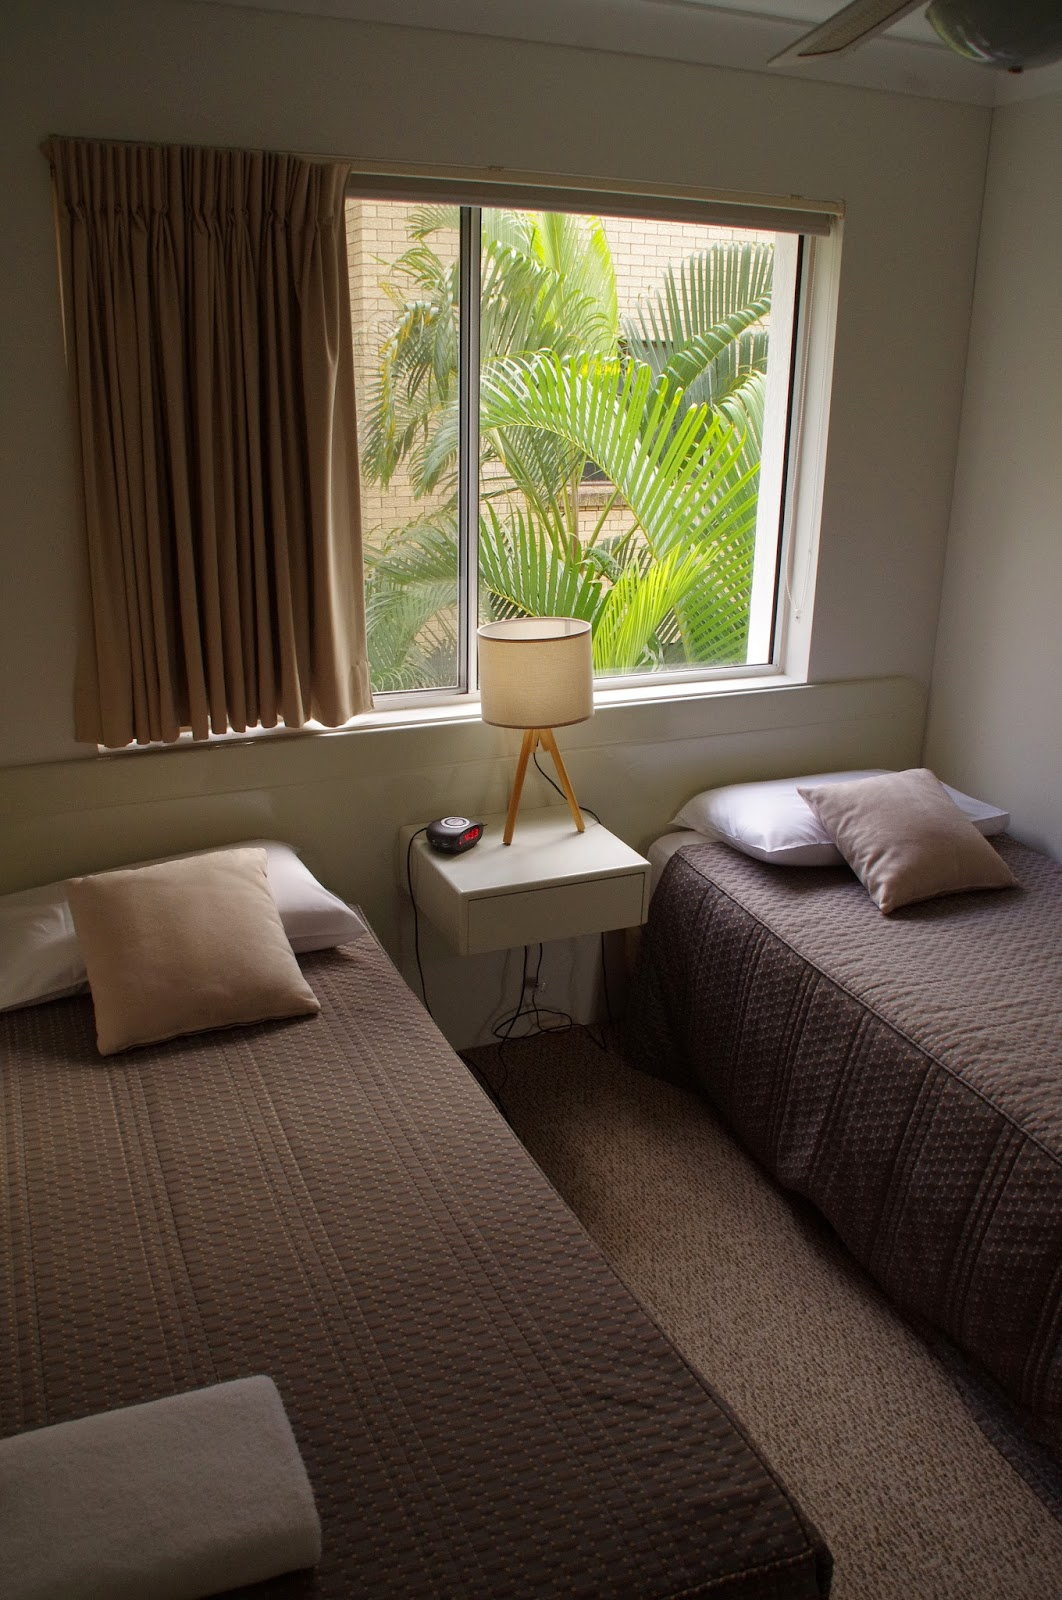 Le beach Apartments Burleigh Heads Bedroom